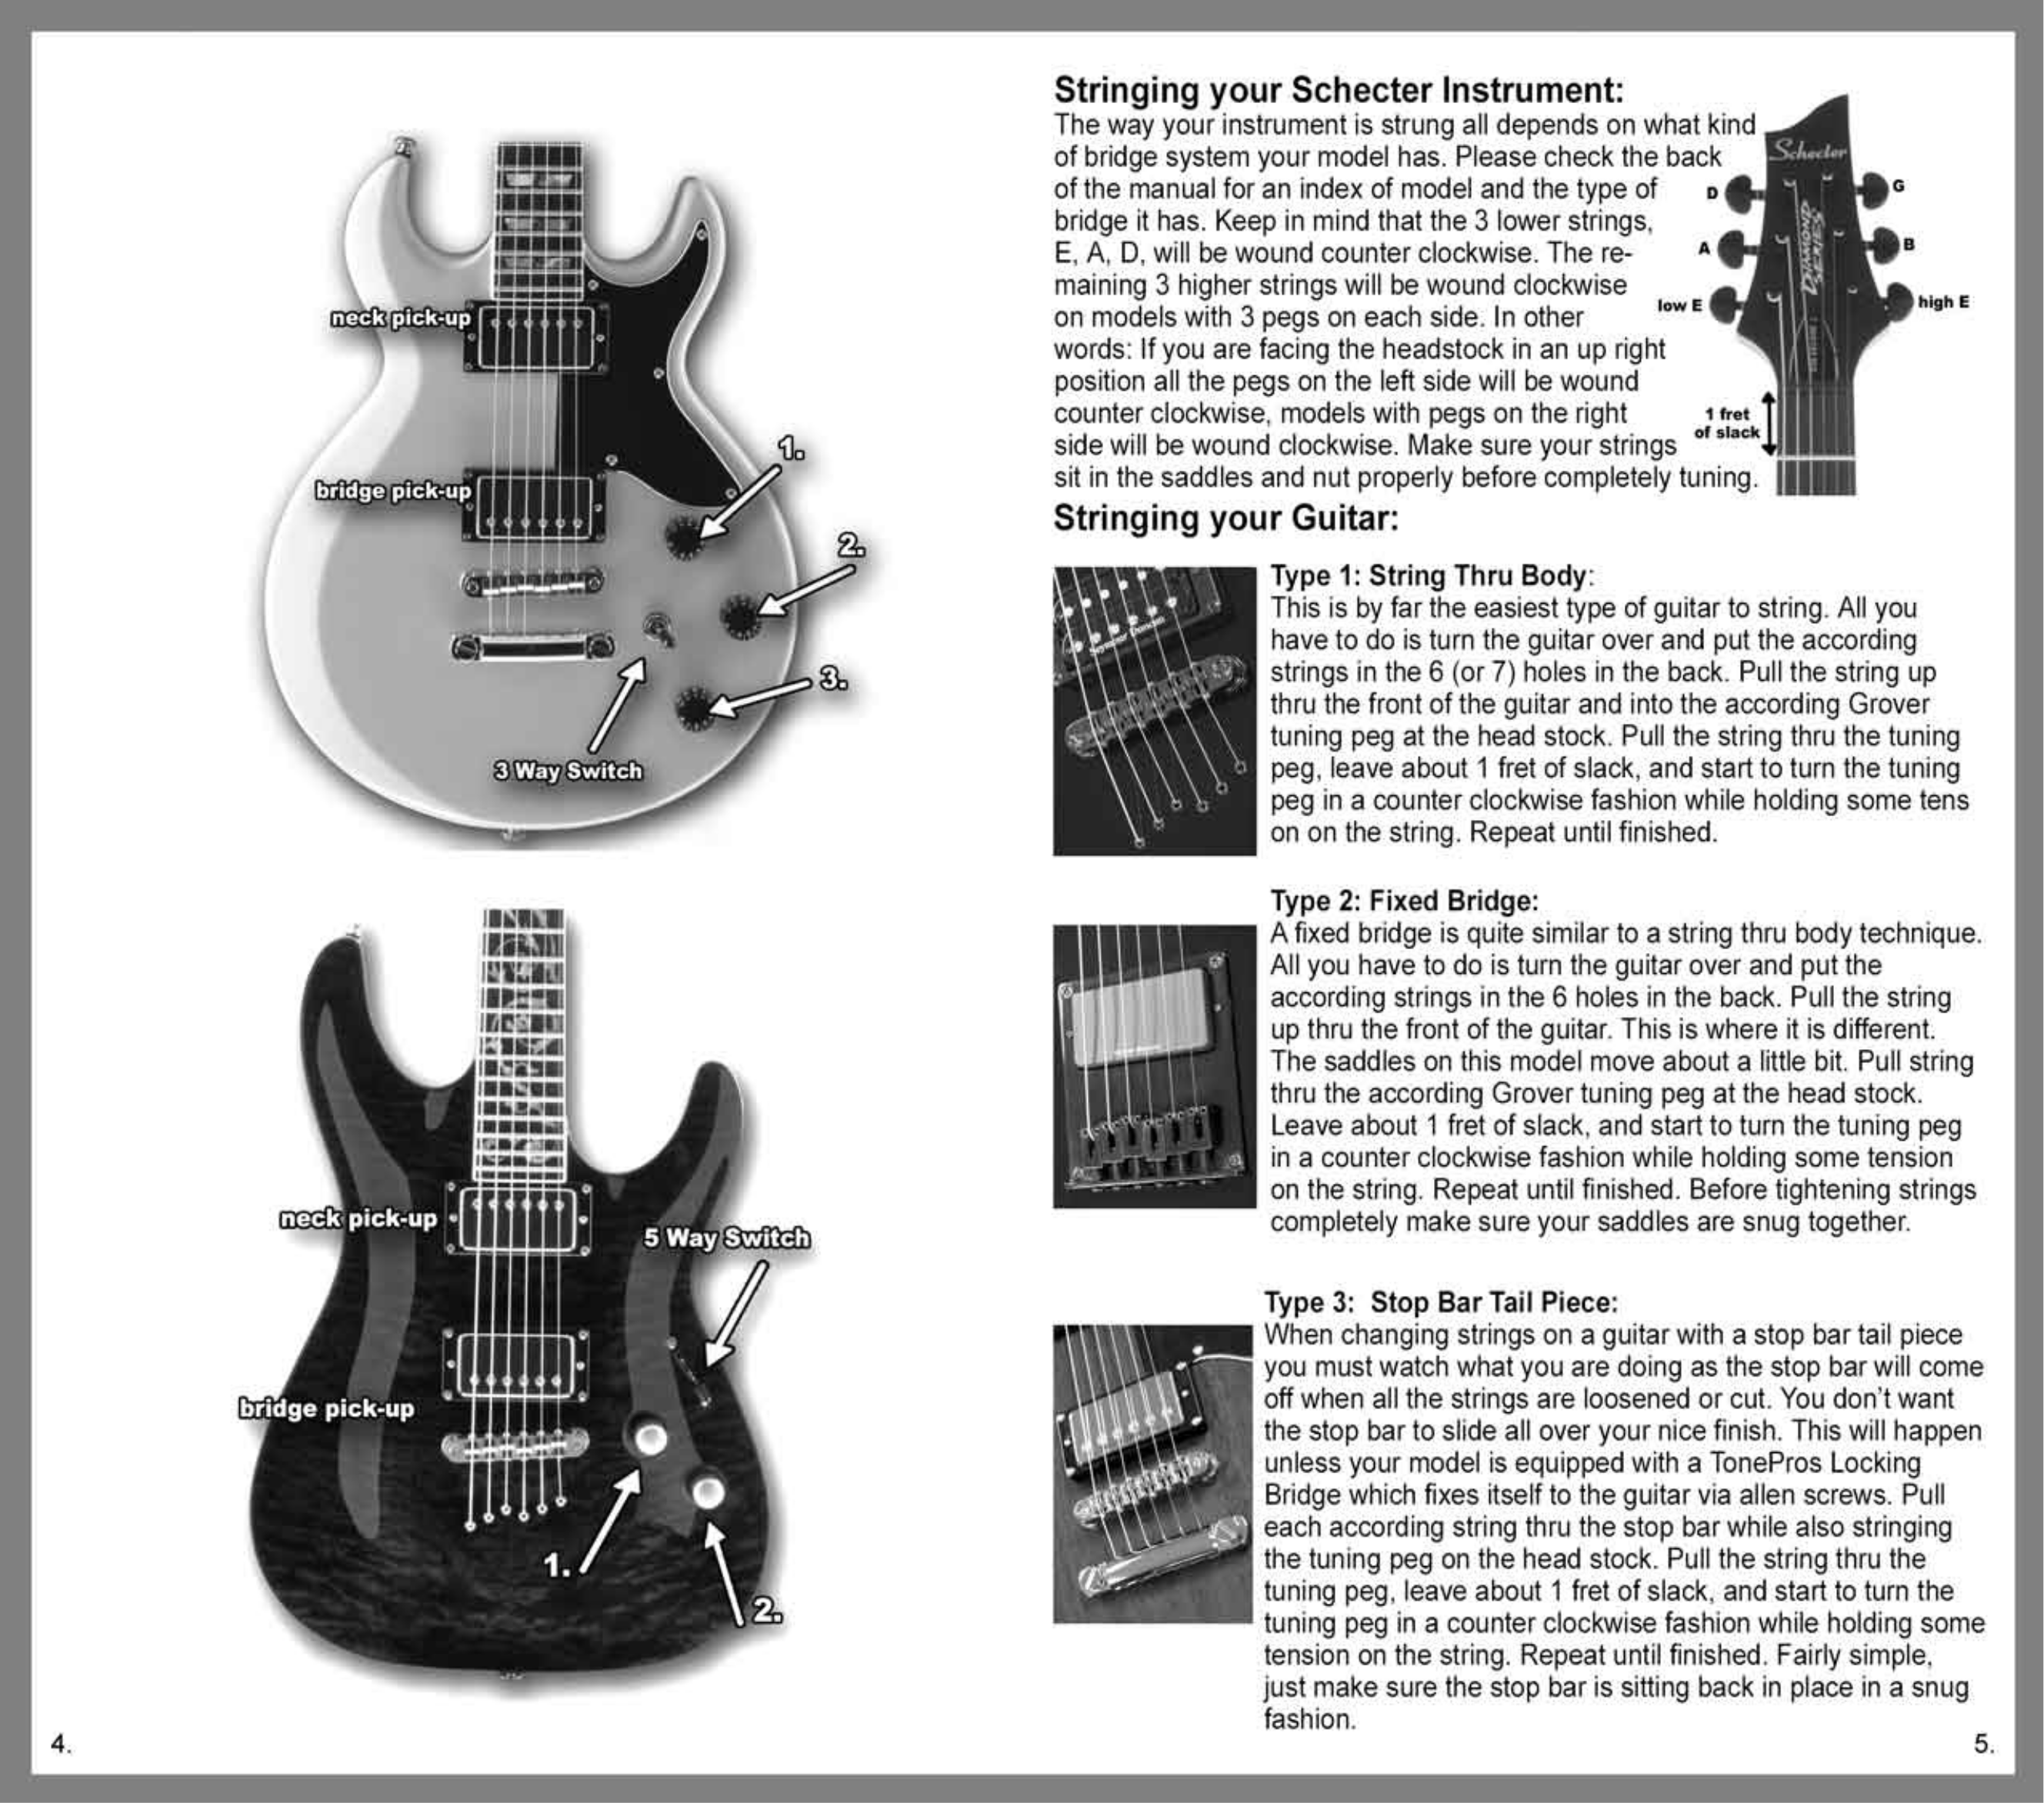 pdf manual for schecter guitar damien elite 7 fr rh umlib com Operators Manual schecter bass owner's manual